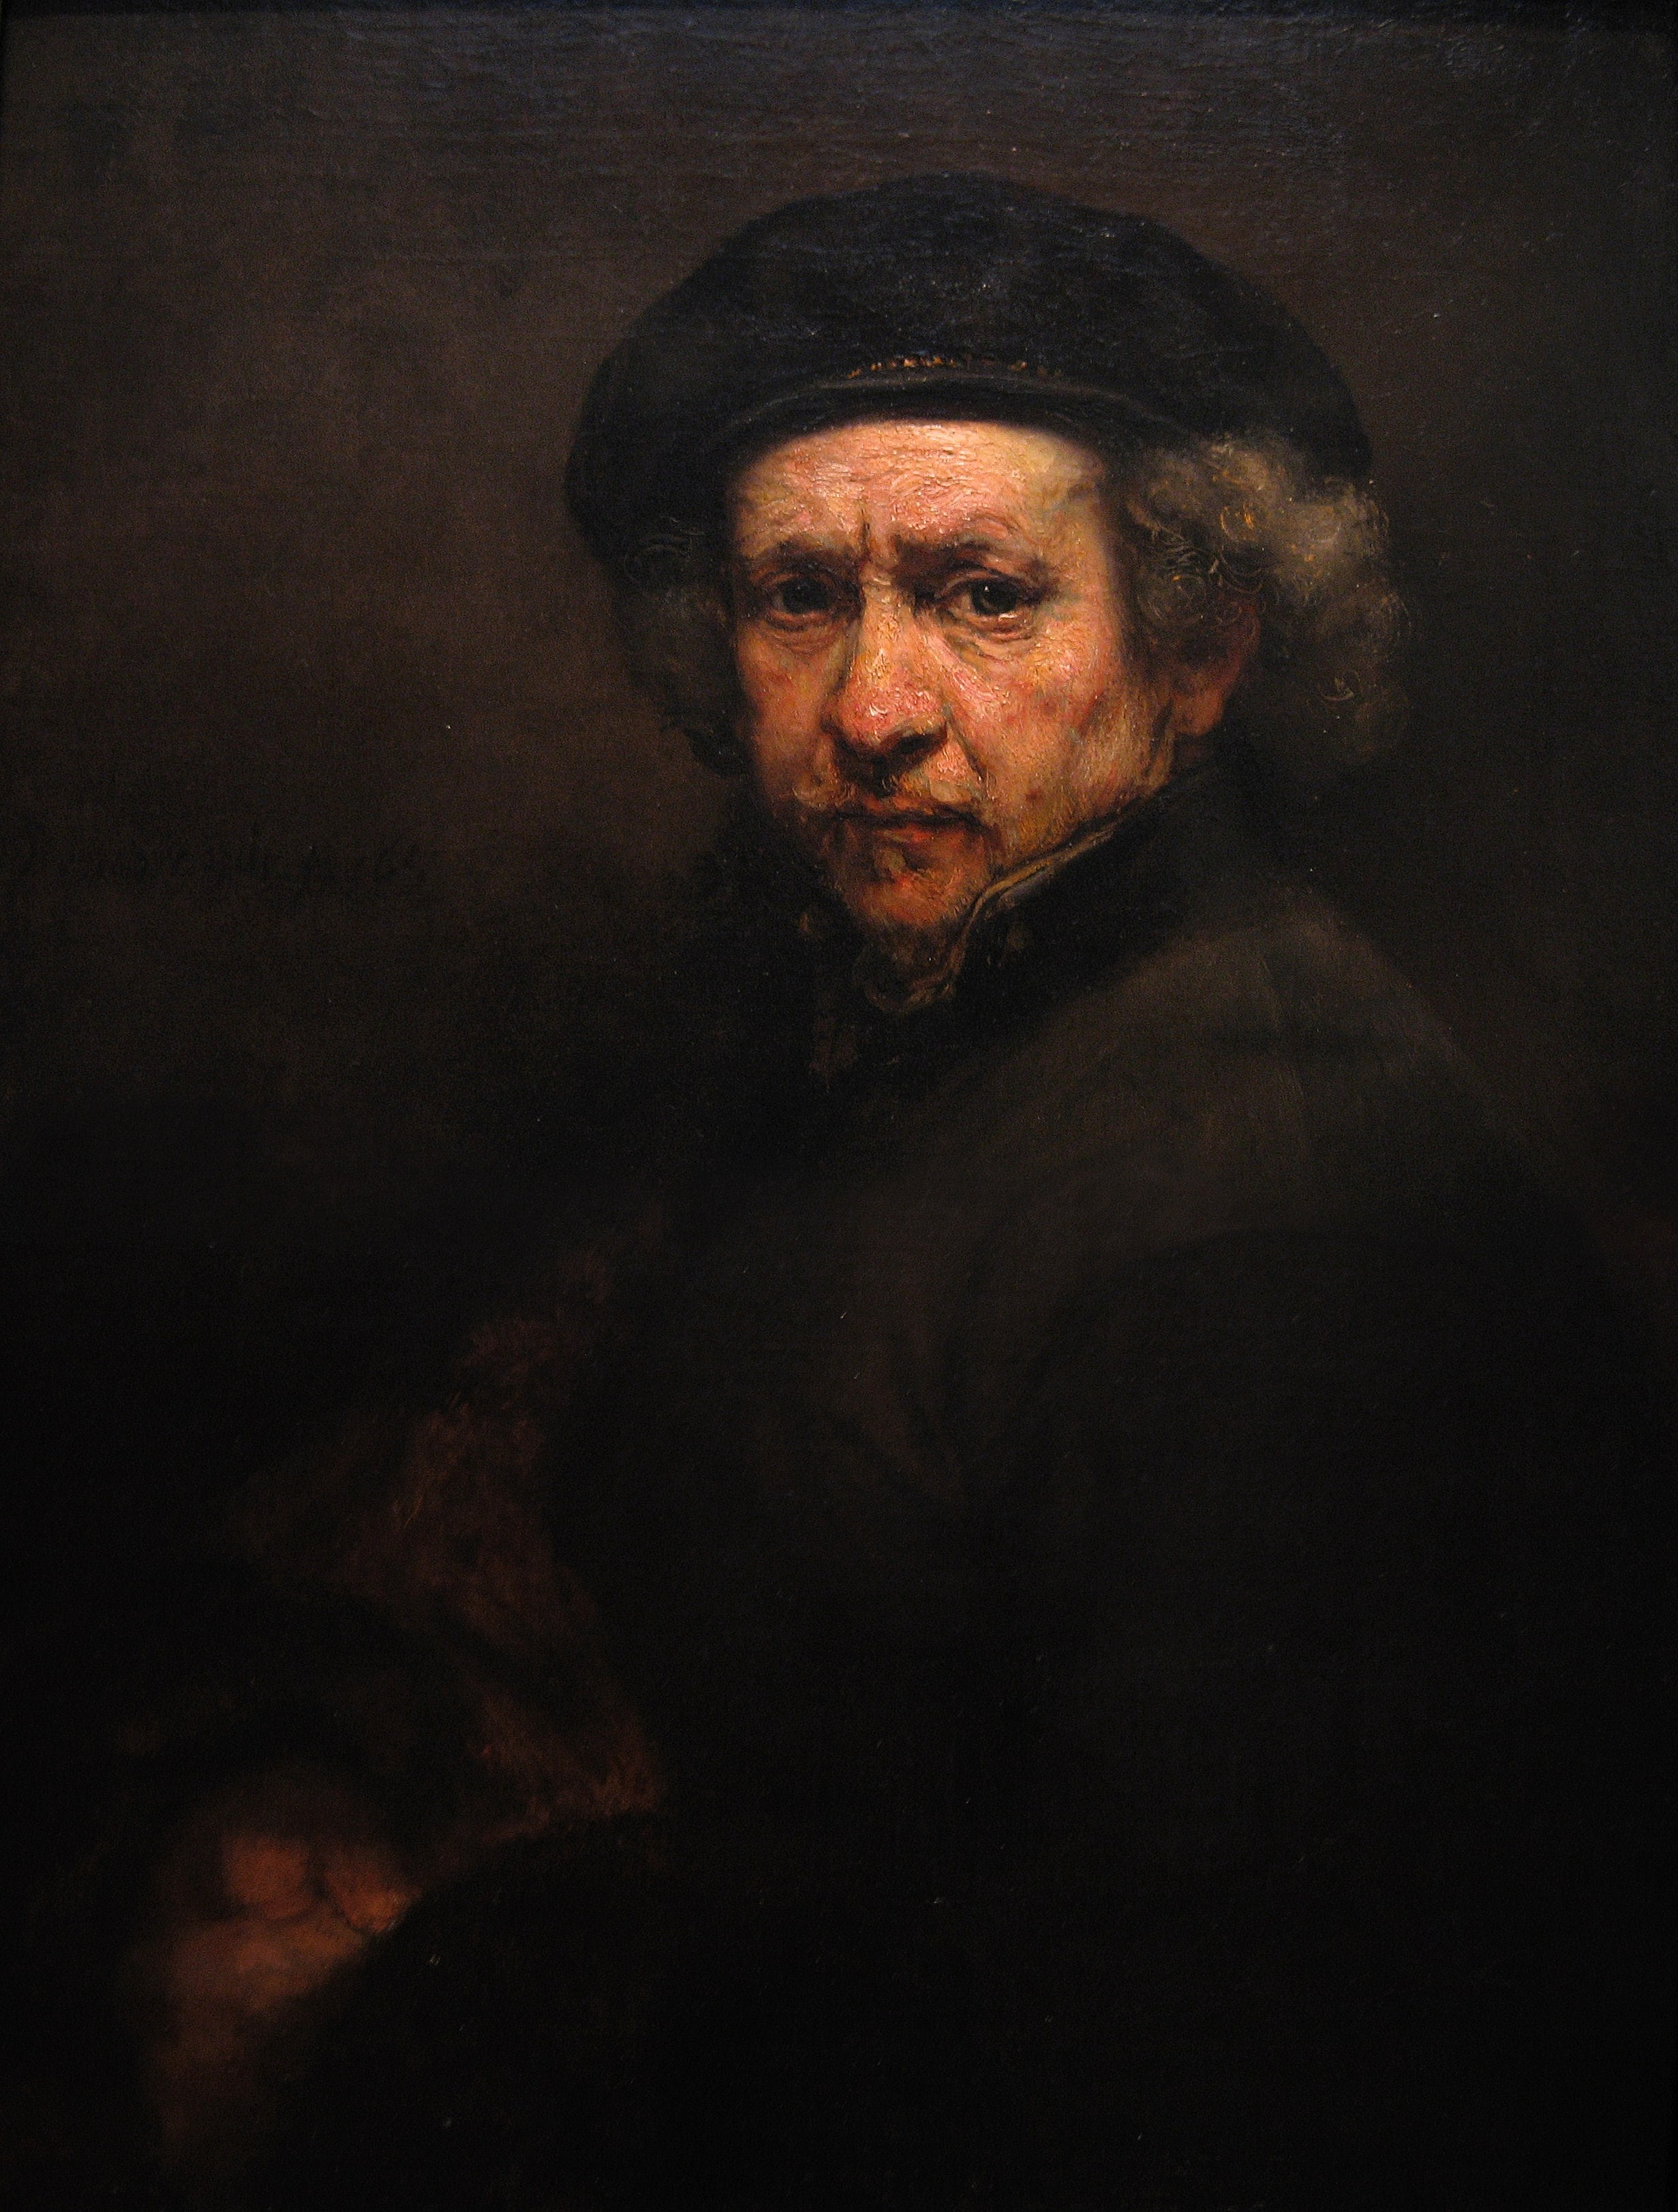 rembrandt rijn Rembrandt harmenszoon van rijn (dutch pronunciation: [ˈrɛmbrɑnt ˈɦɑrmənsoːn vɑn ˈrɛin], july 15, 1606 – october 4, 1669) was a dutch painter and etcher he is generally considered one of the greatest painters and printmakers in european art history and the most important in dutch history.